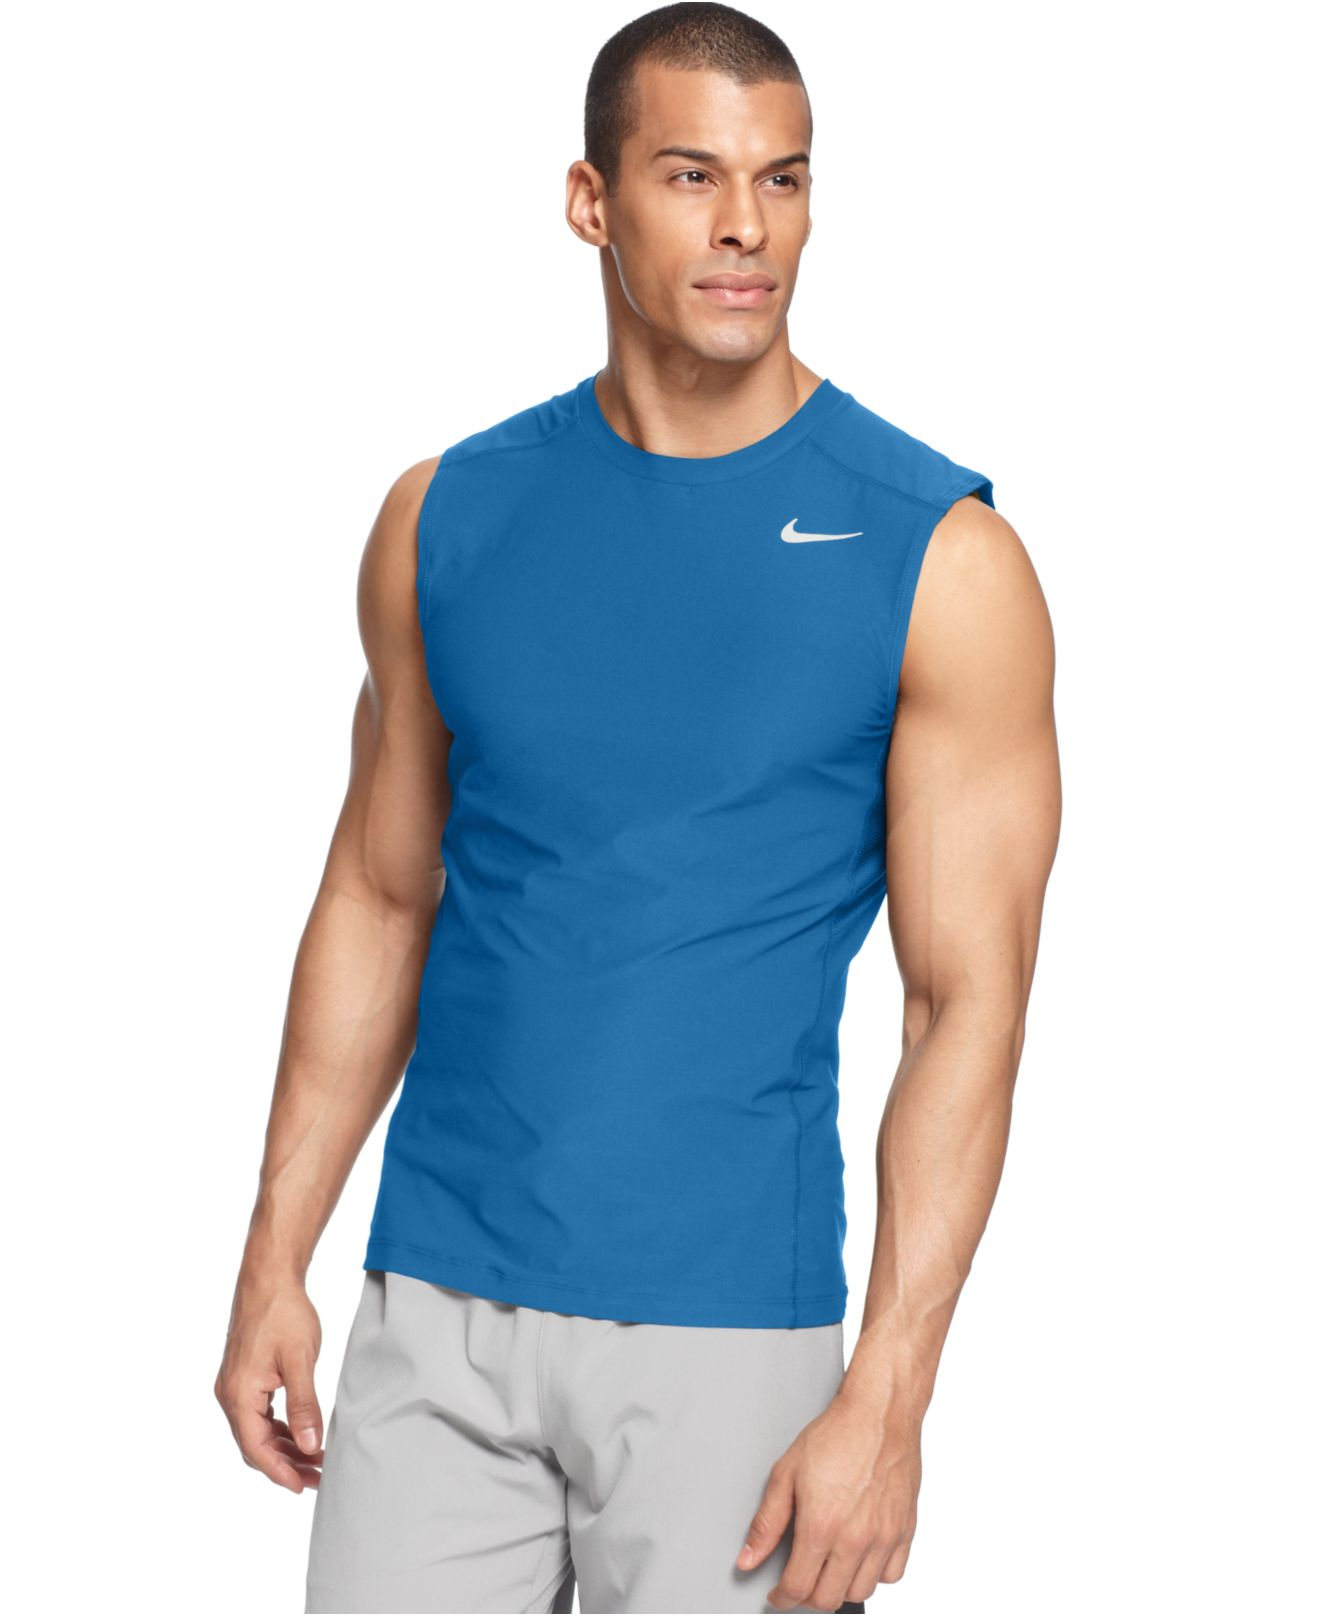 Shop from the world's largest selection and best deals for Nike Sleeveless Running Athletic Shirts & Tops for Men. Shop with confidence on eBay!